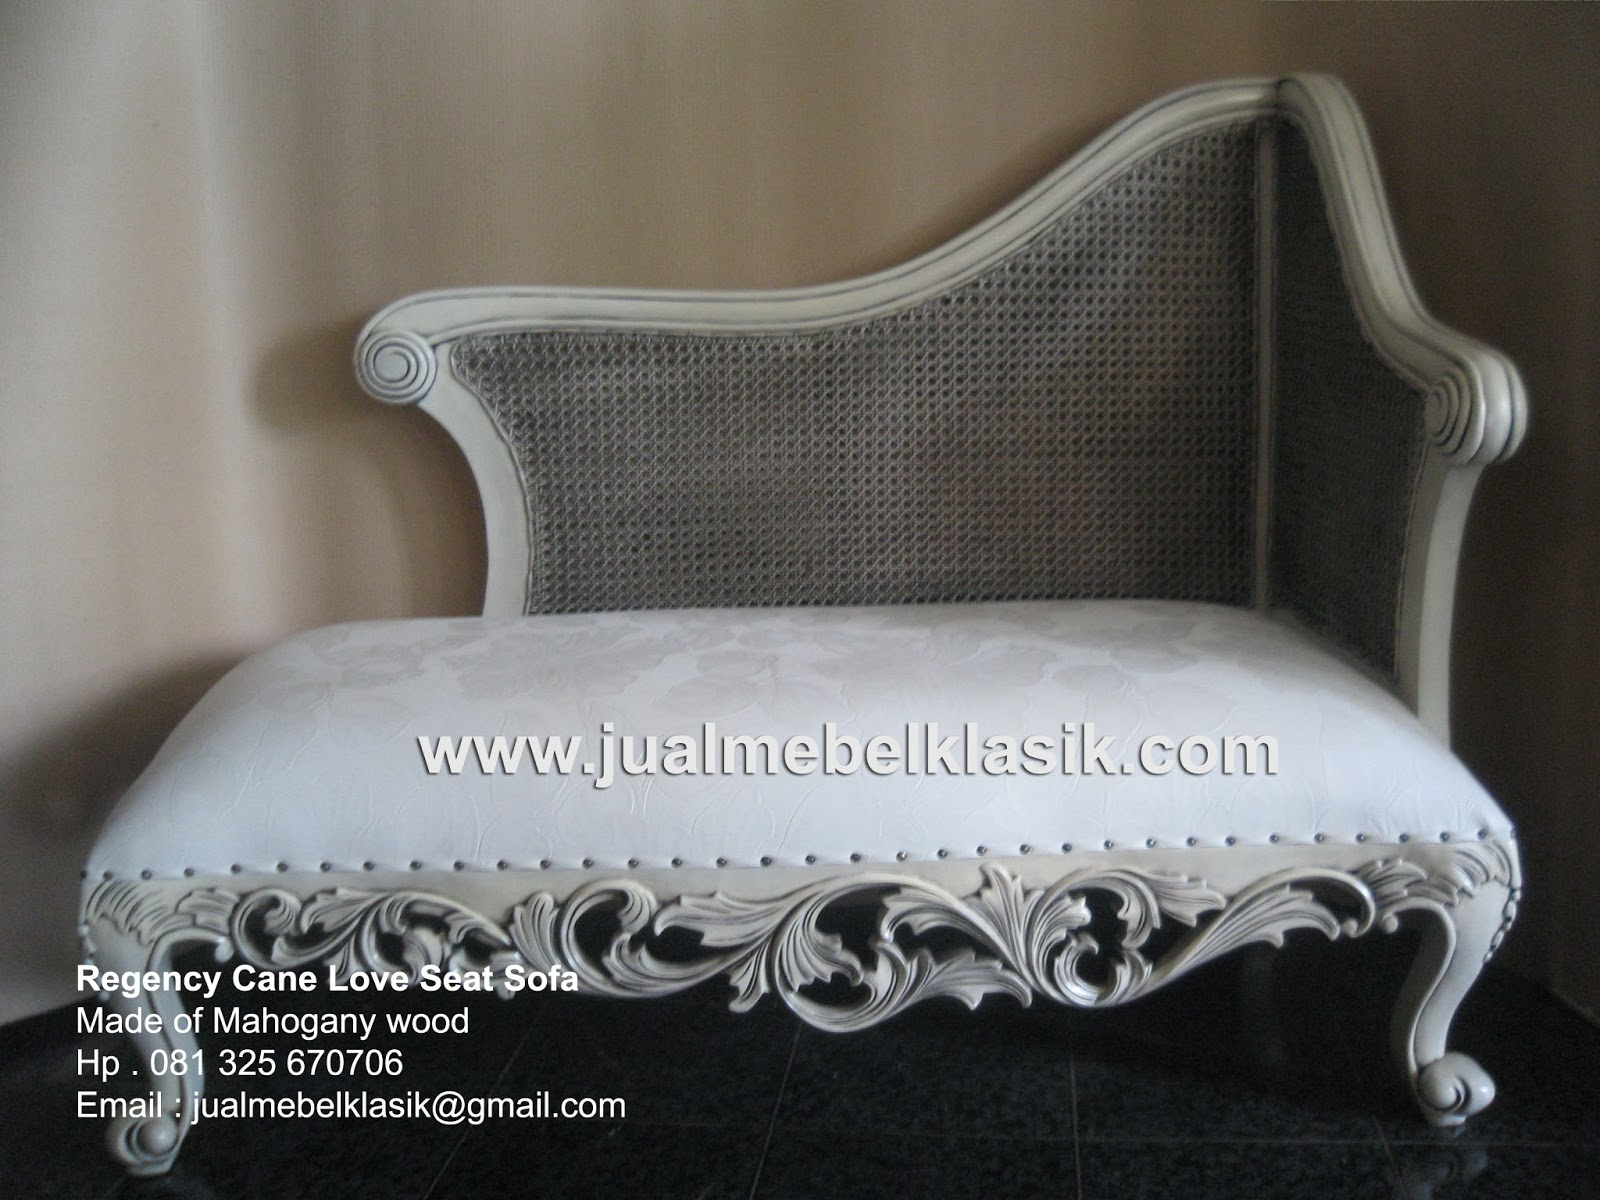 Supplier Classic Furniture Indonesia furniture supplier rattan cane sofa mahogany finishing white painted